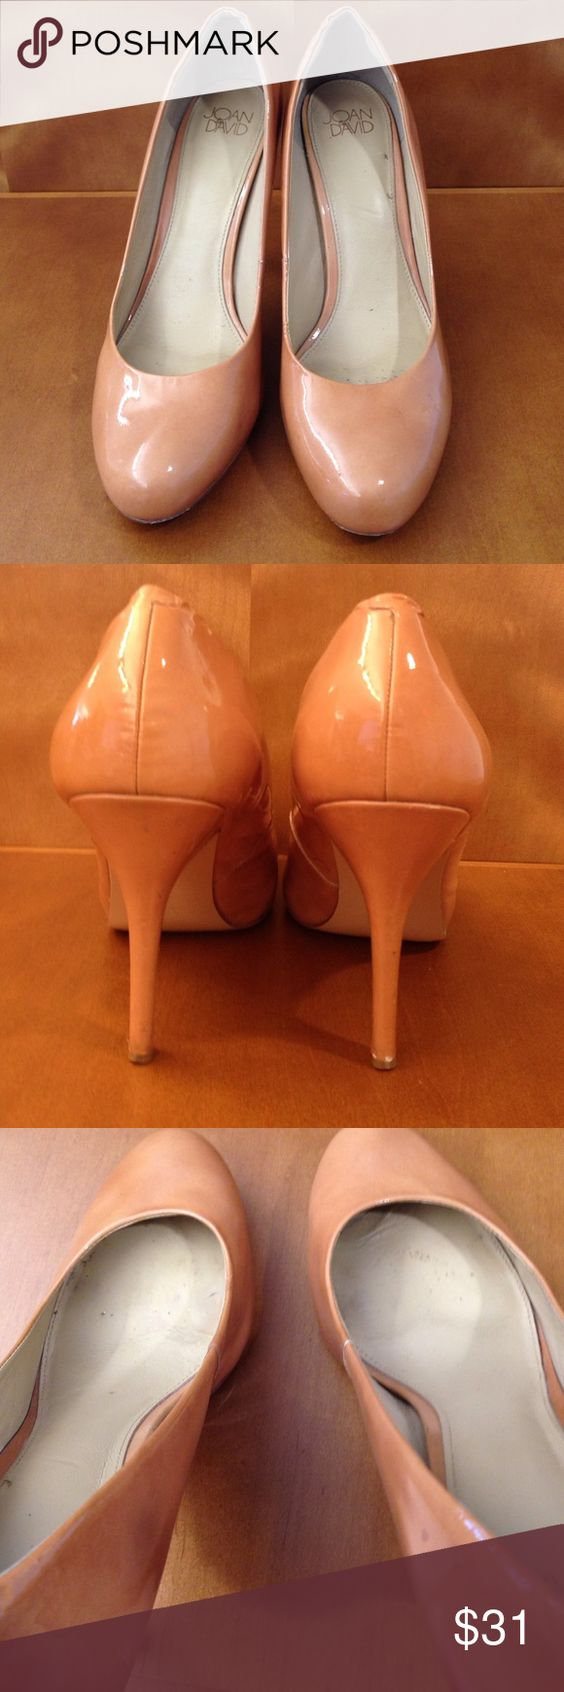 Joan & David heels Nude heels are about 3.5 inches patten leather they are used Joan & David Shoes Heels